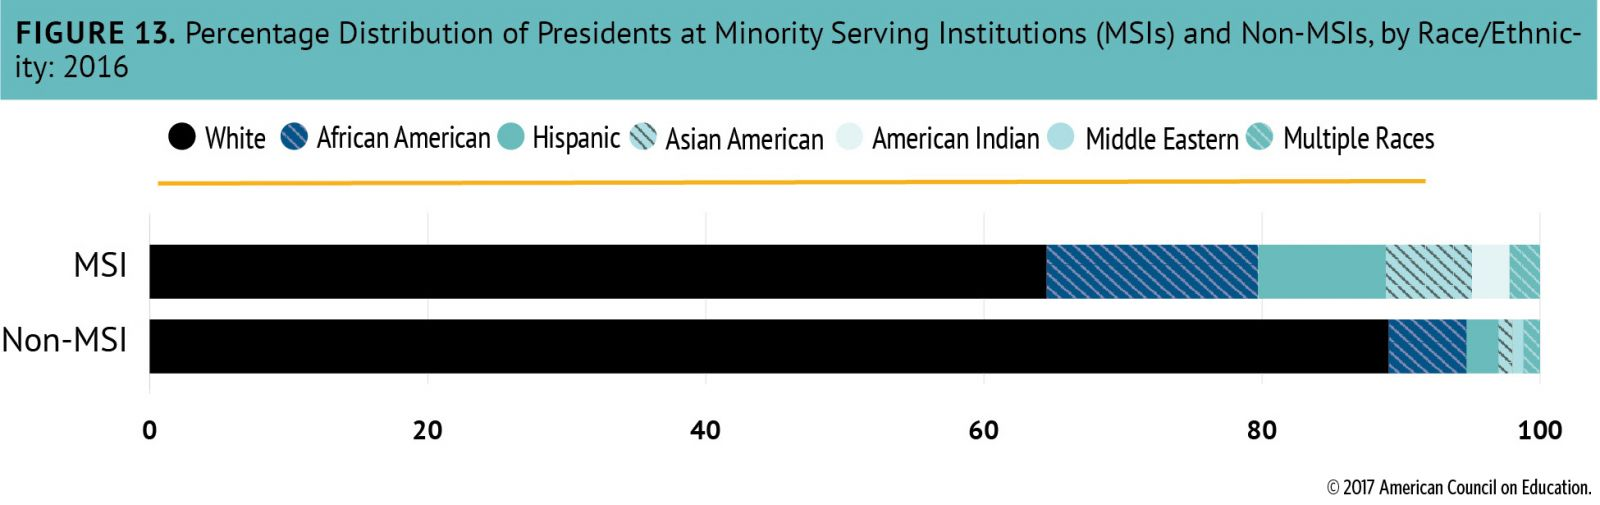 Chart: Percentage Distribution of Presidents at Minority-Serving Institutions and Non-MSIs, by Race/Ethnicity, 2016